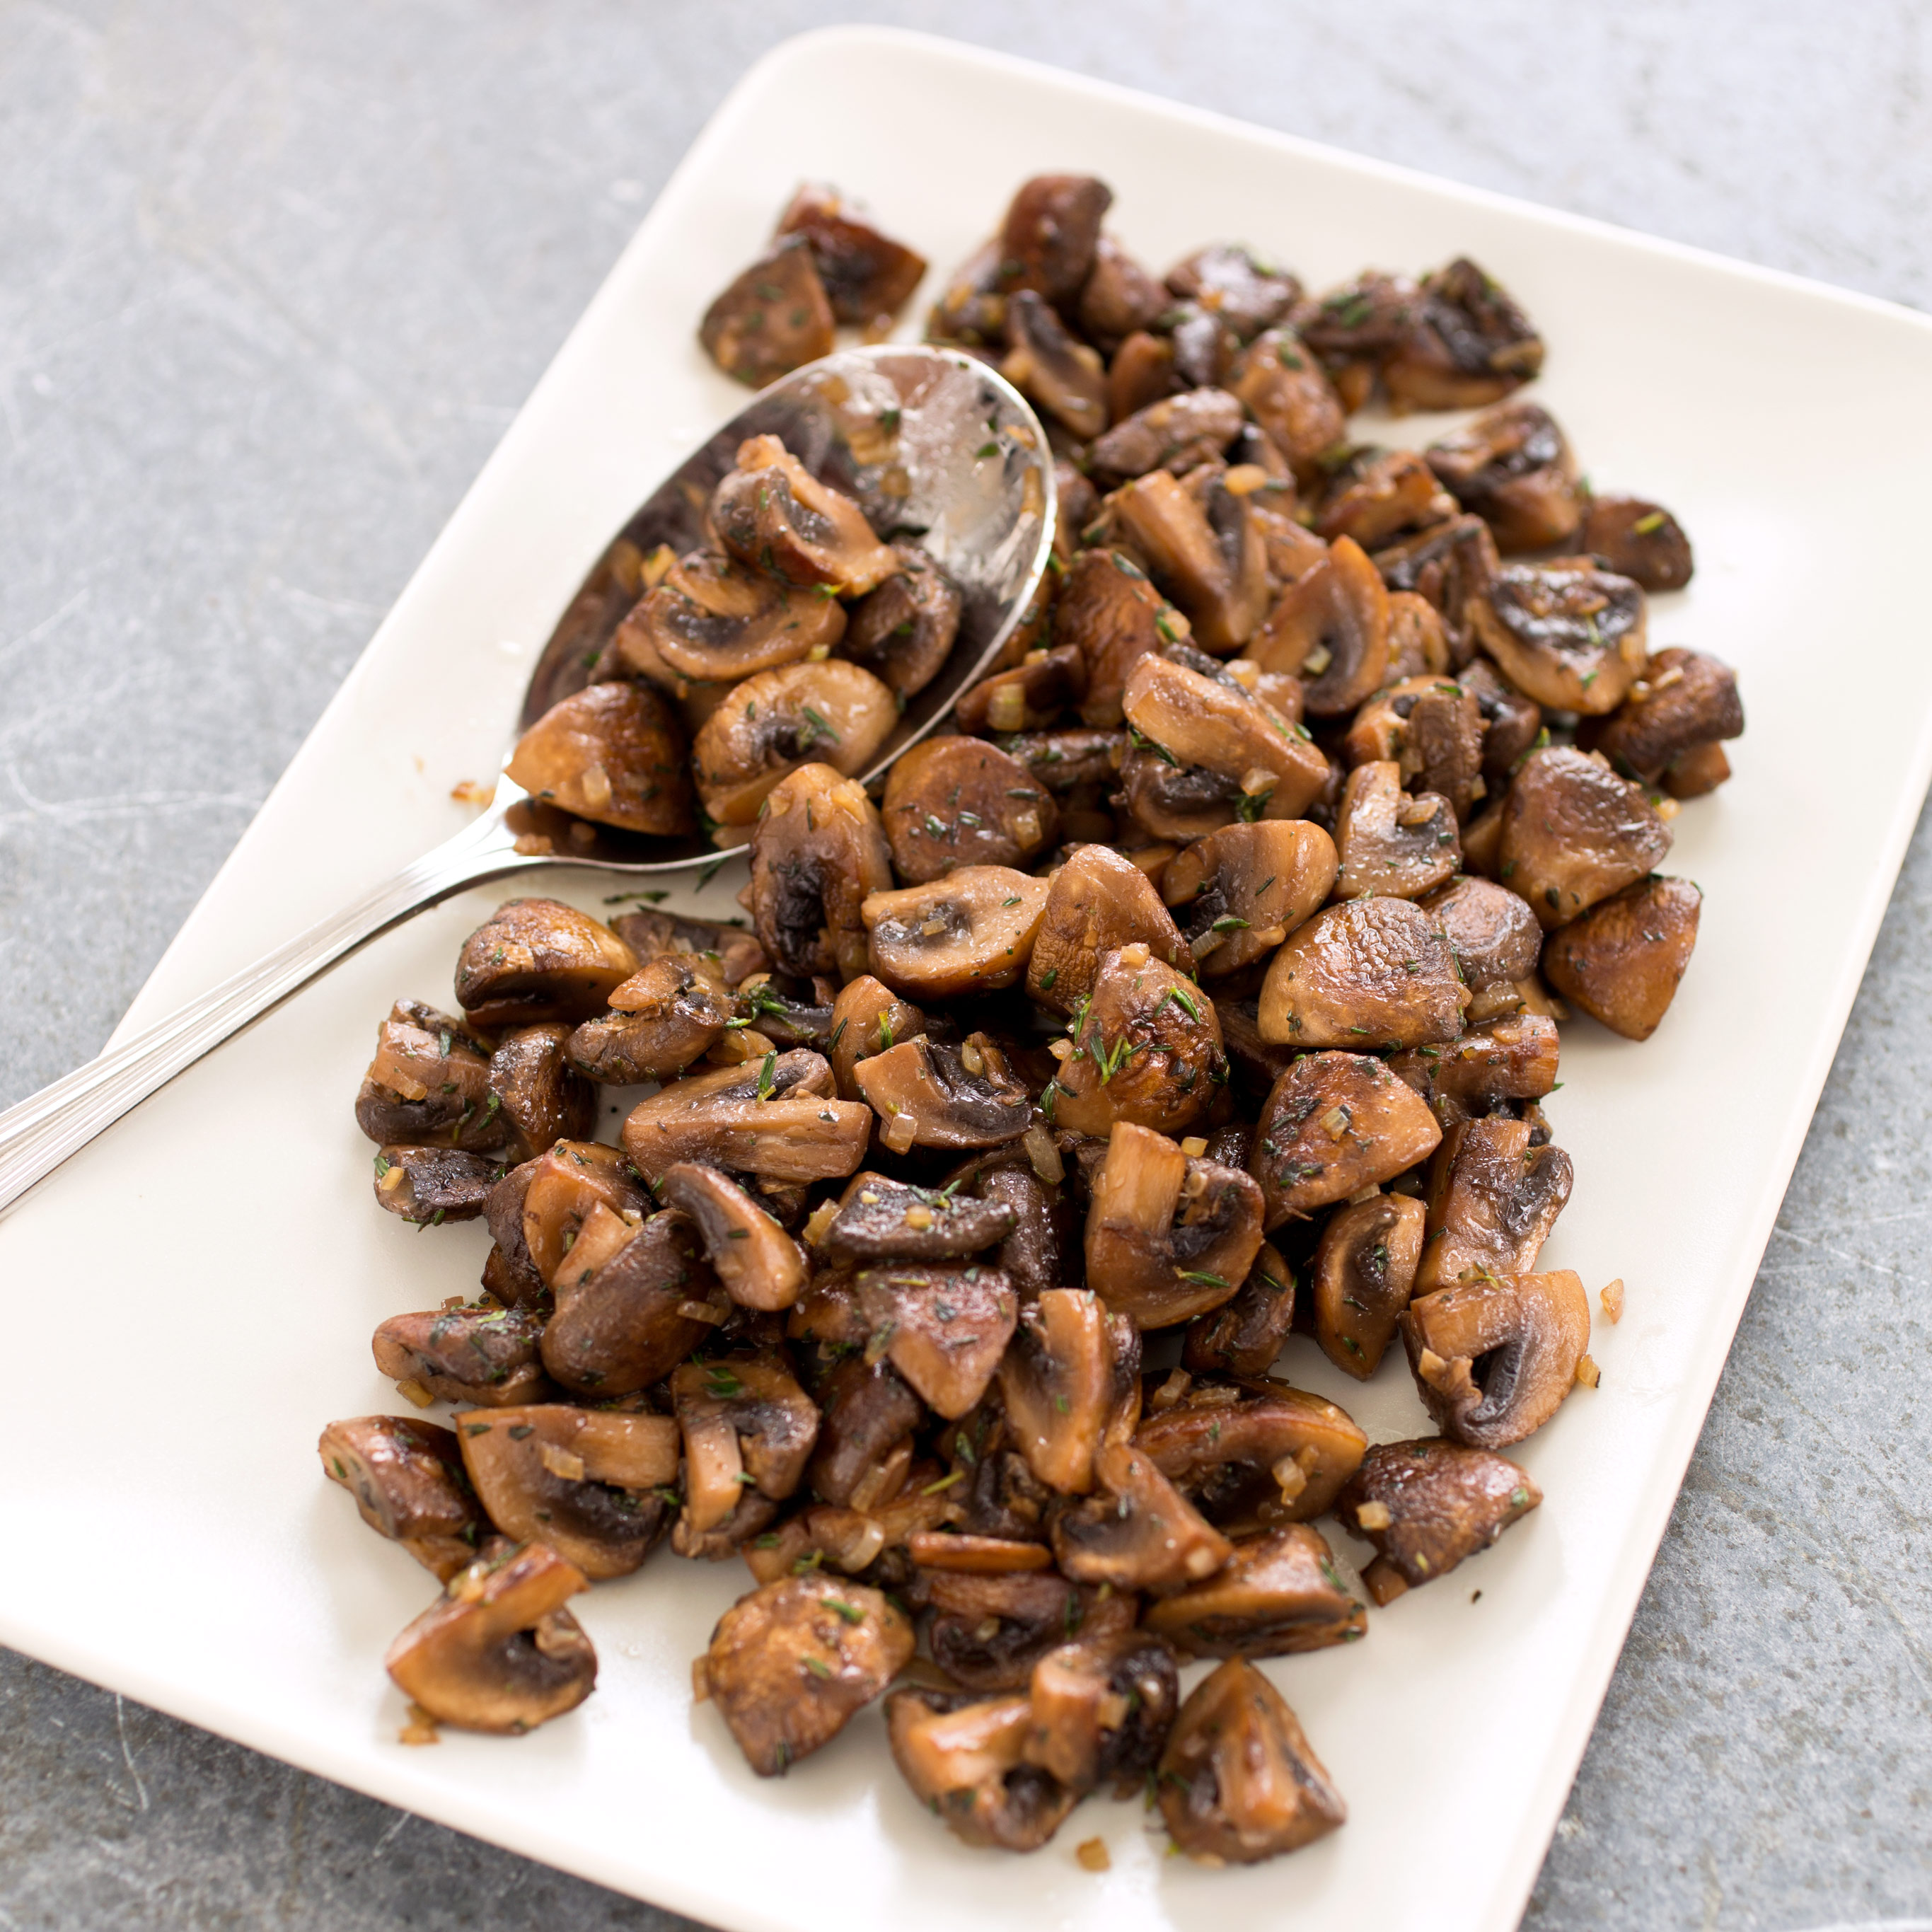 Sauteed Mushrooms with Shallots and Thyme | Cook's Illustrated